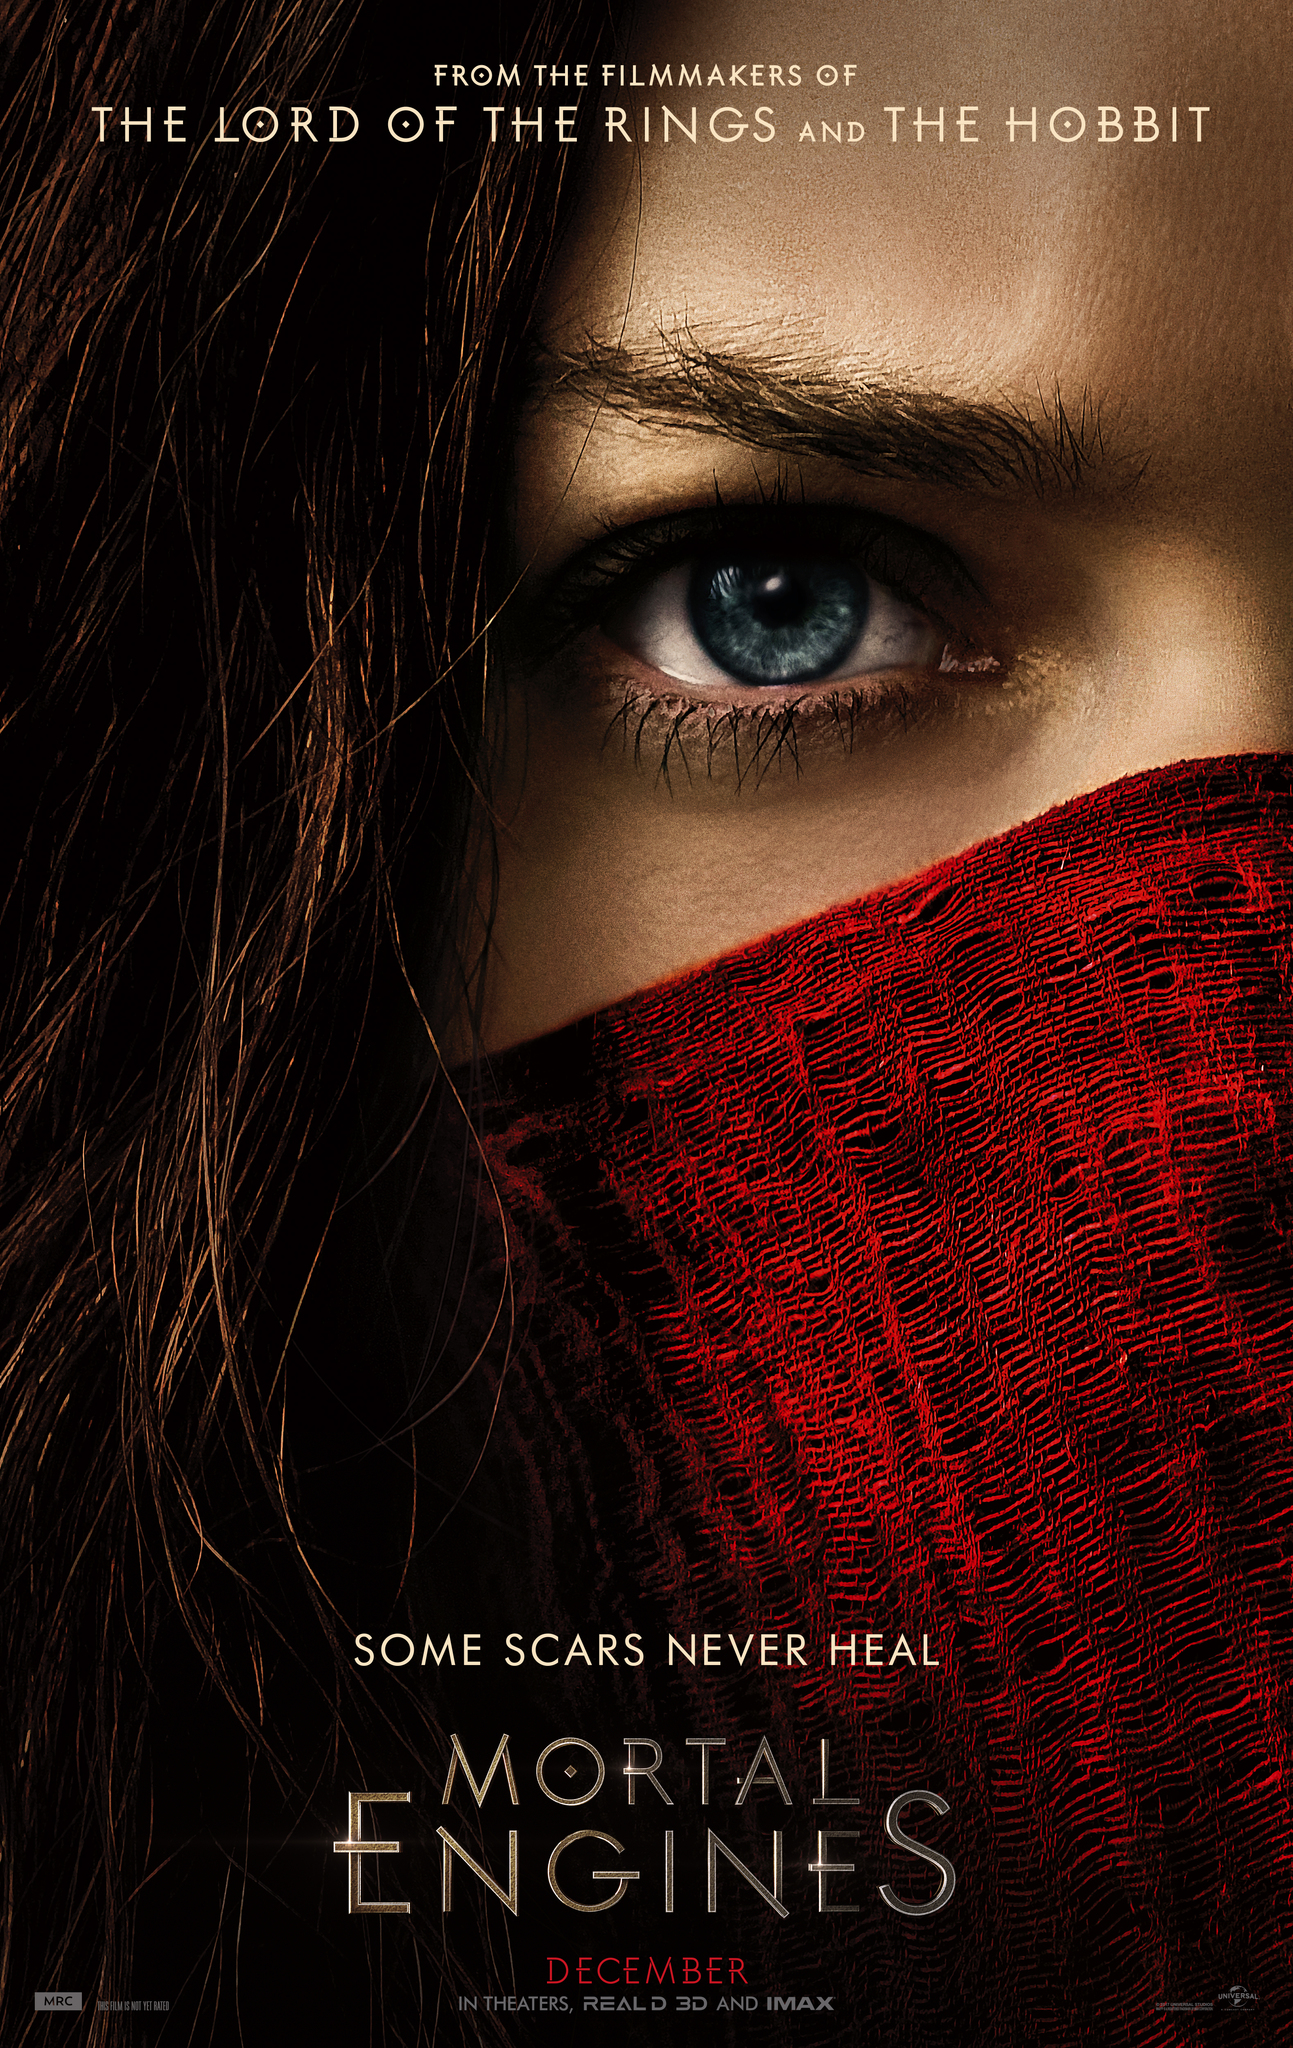 Mortal Engines film review: is there more to the Peter Jackson-produced epic than spectacle?